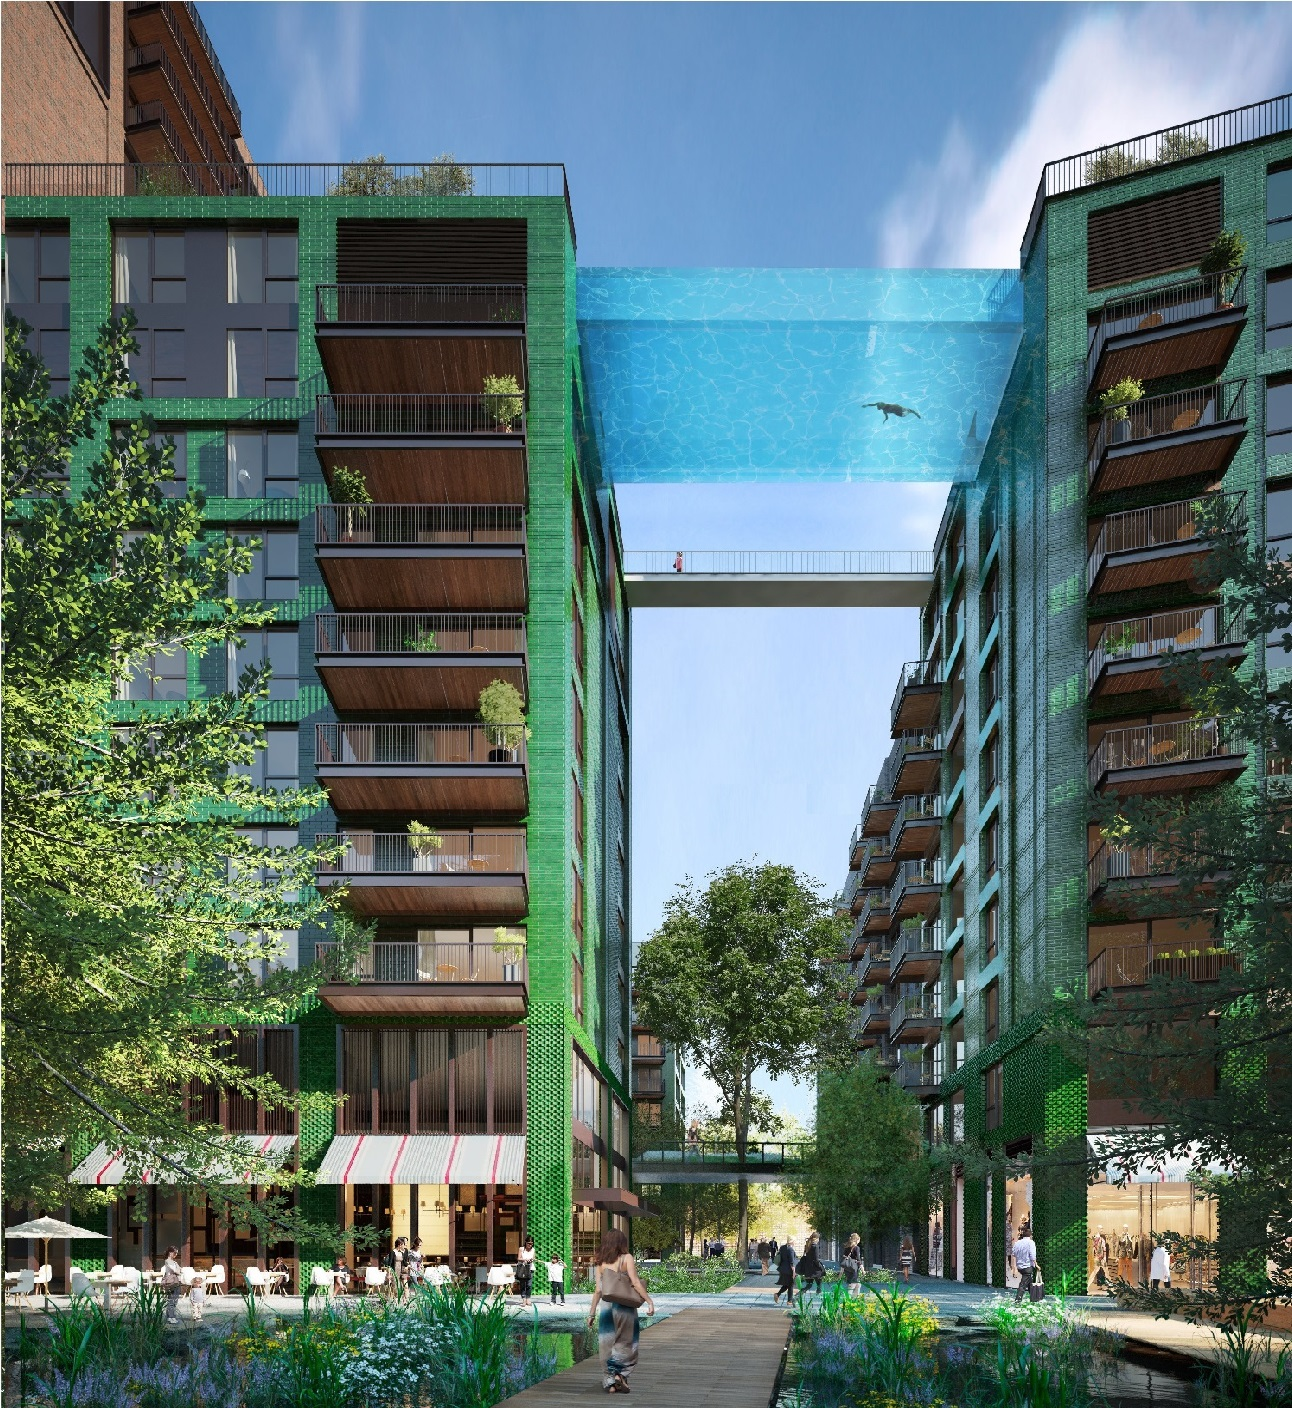 City officials have given developers permission to build a transparent aquarium-like swimming pool hanging 10 stories above the ground.